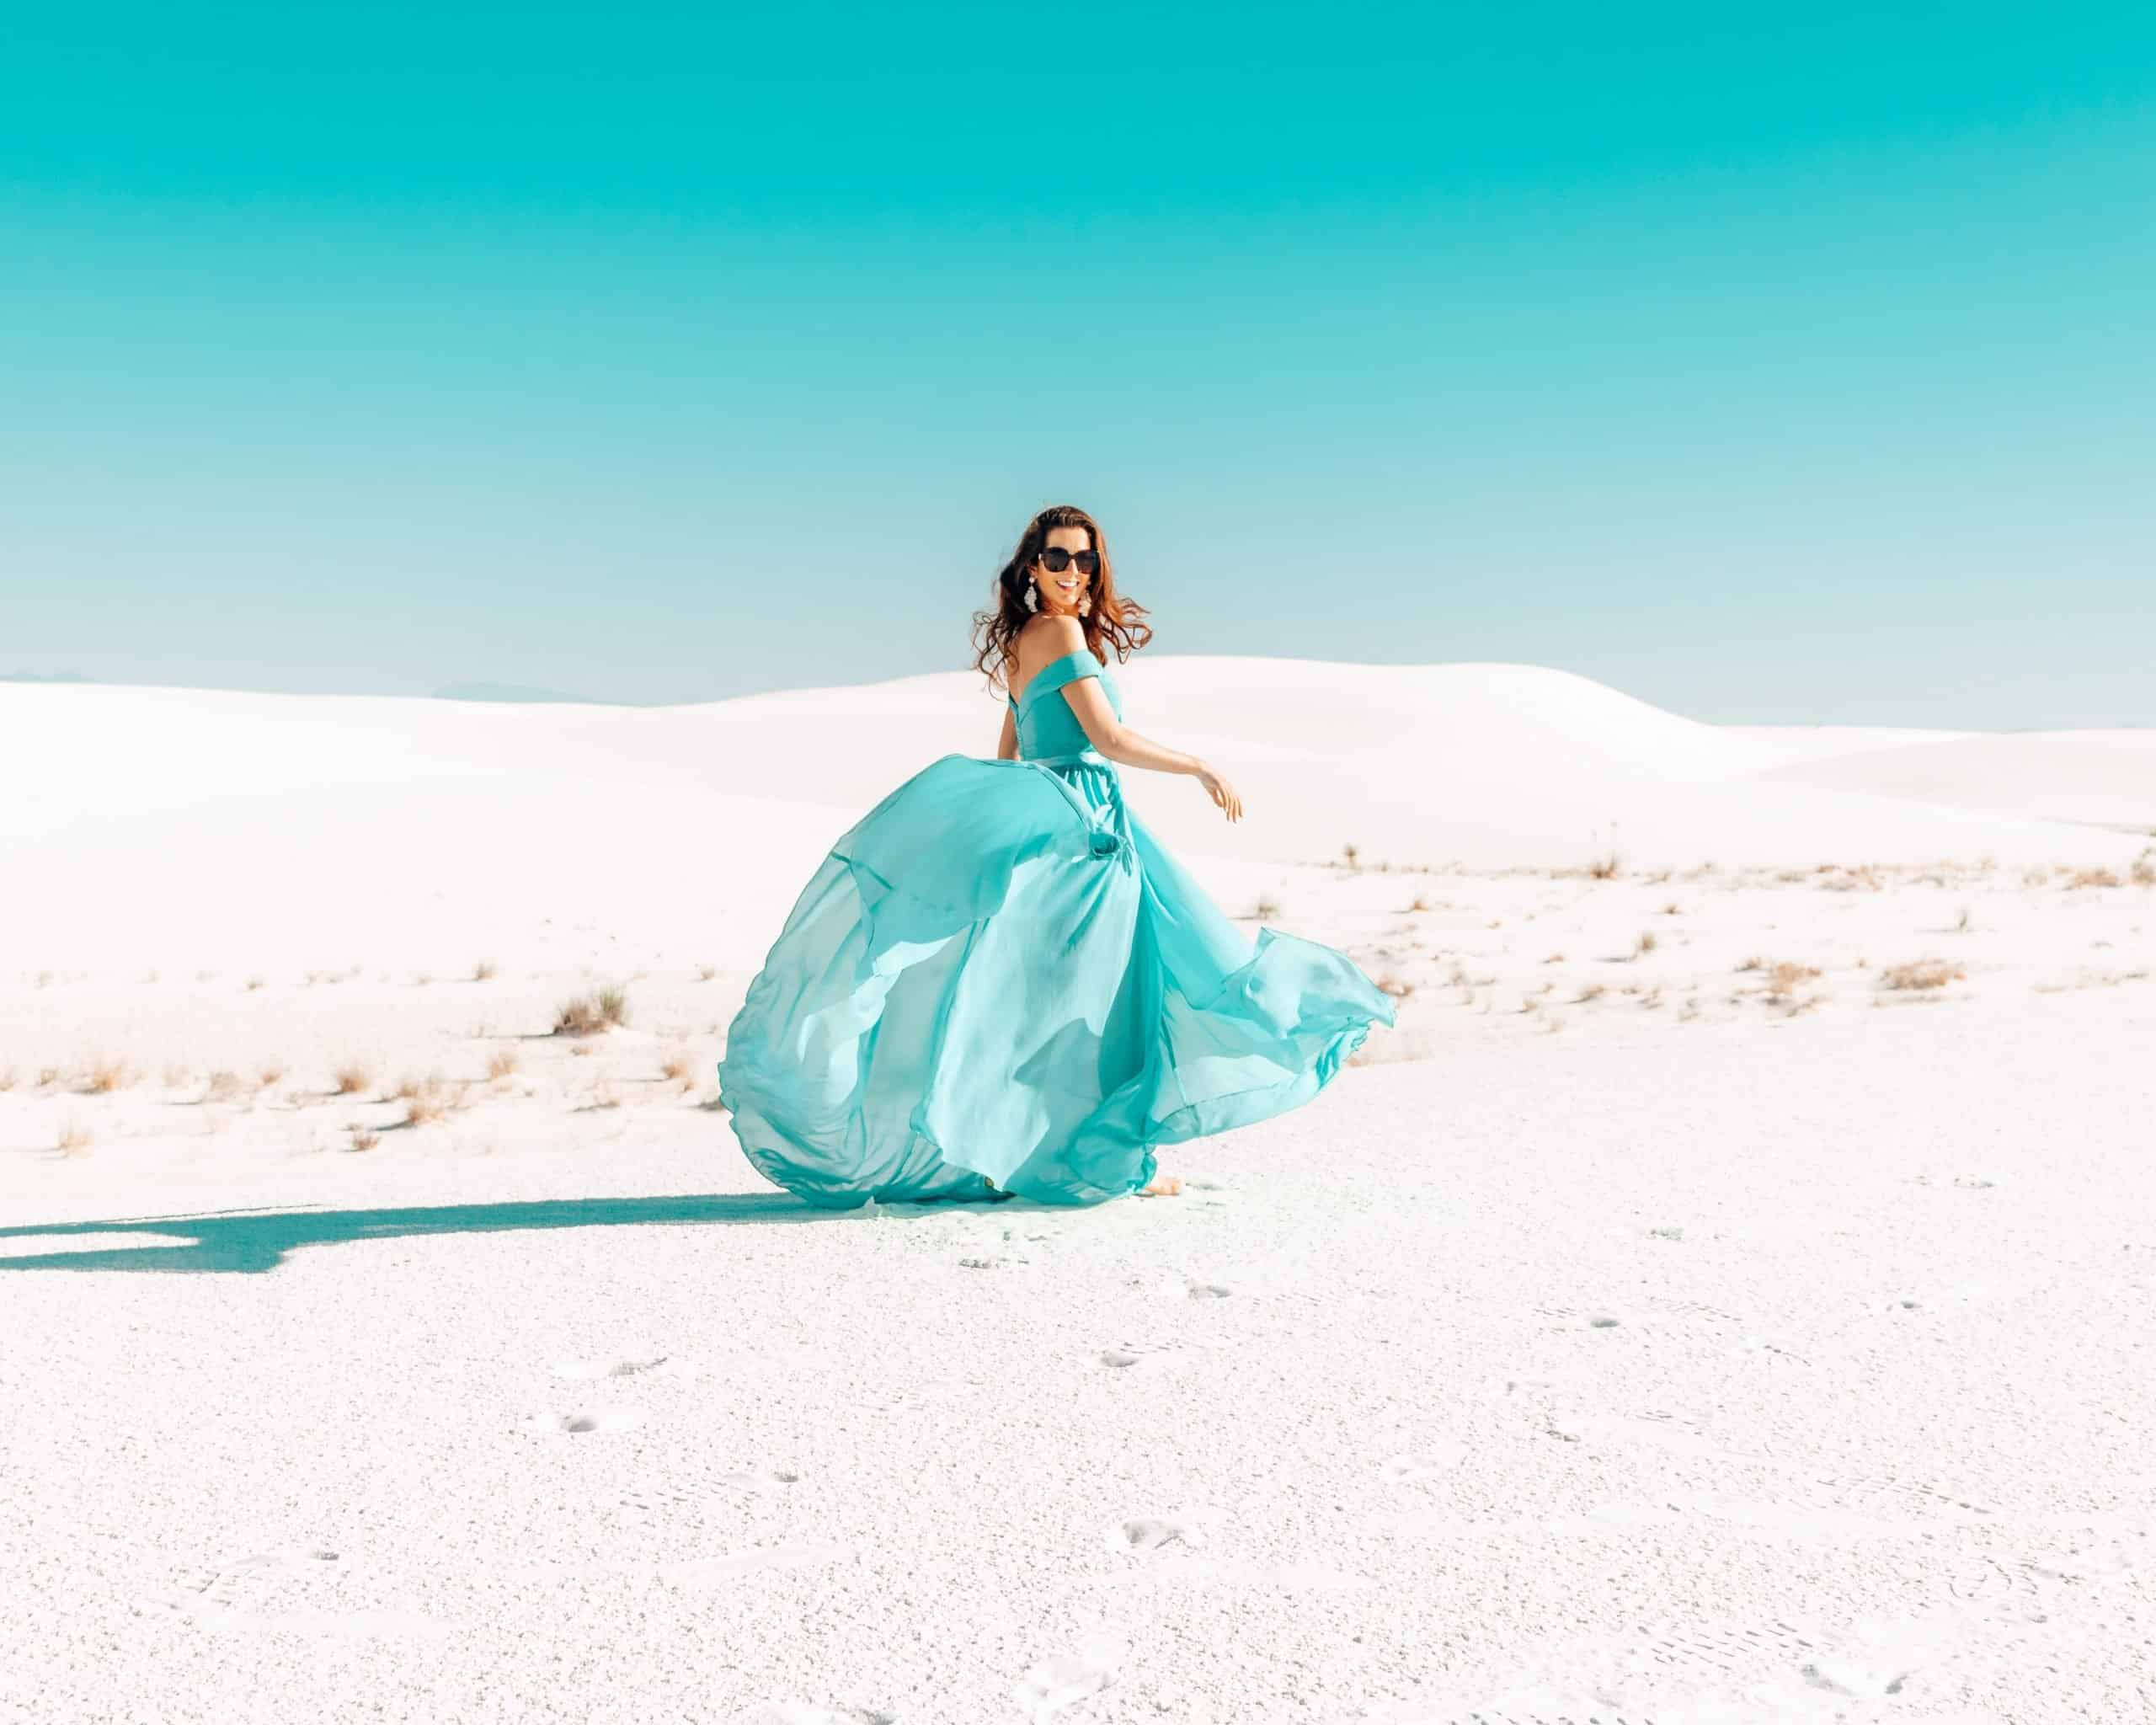 Girl in Dress at White Sands National Monument